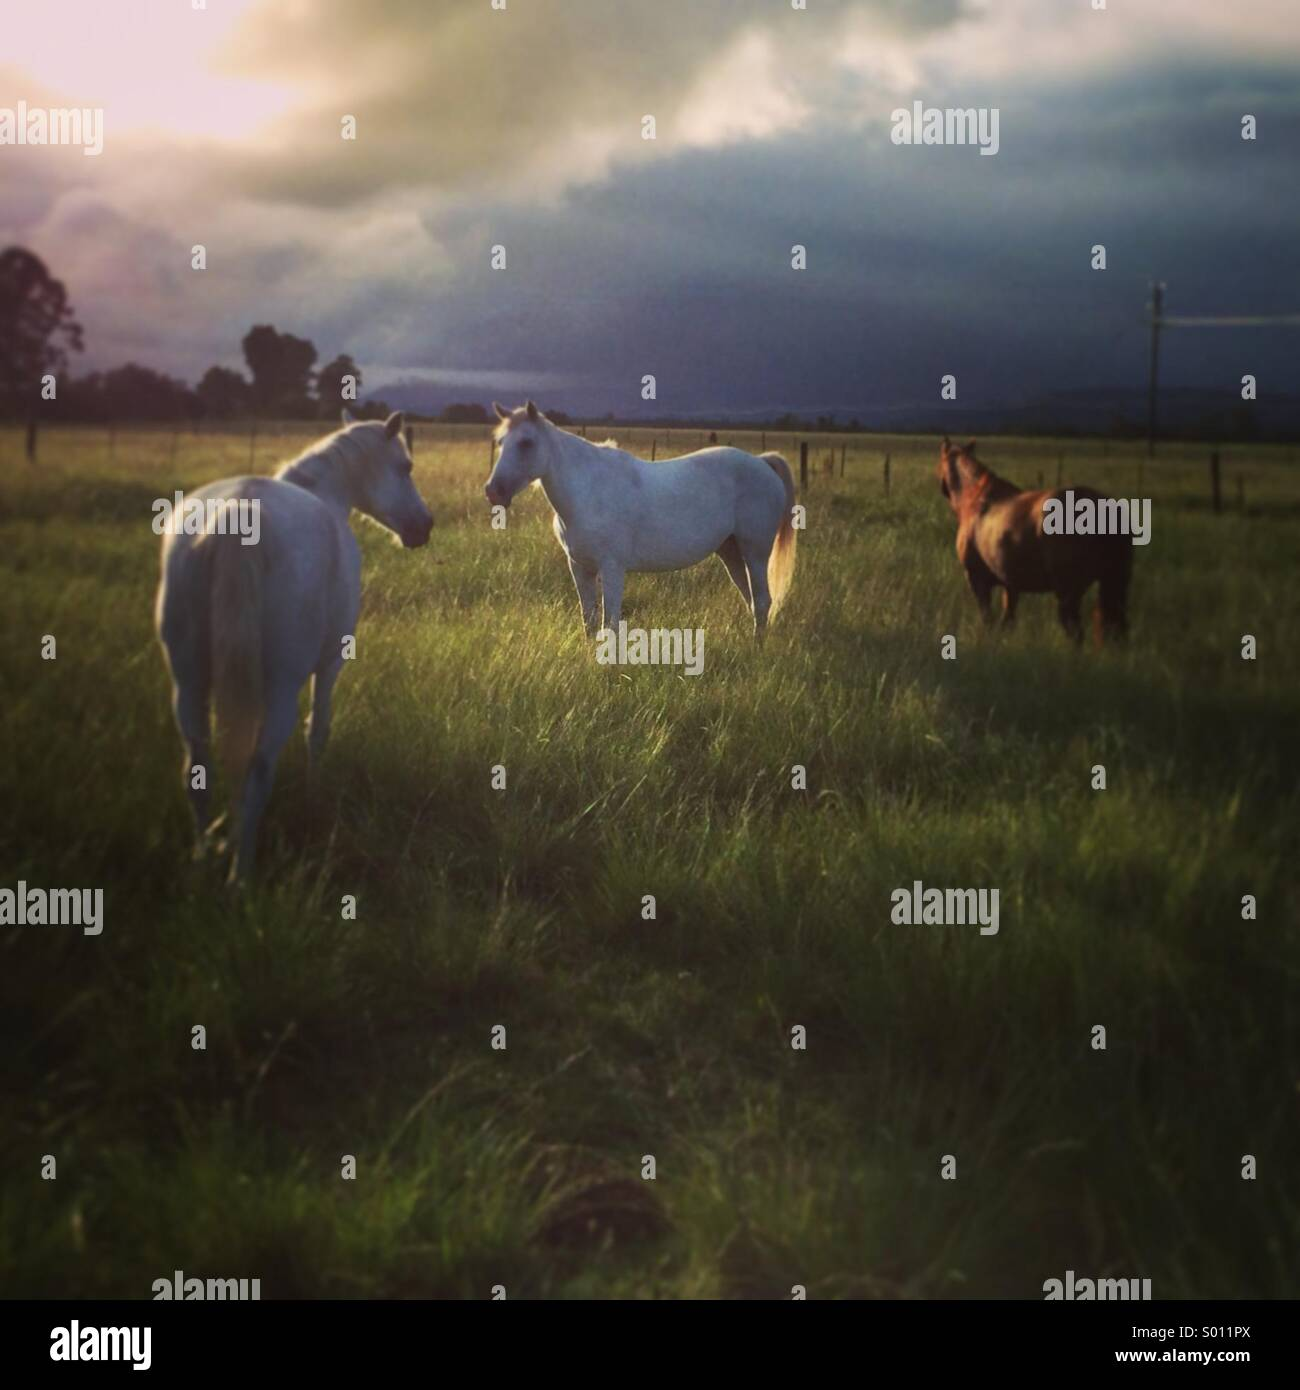 Horses in the field - Stock Image